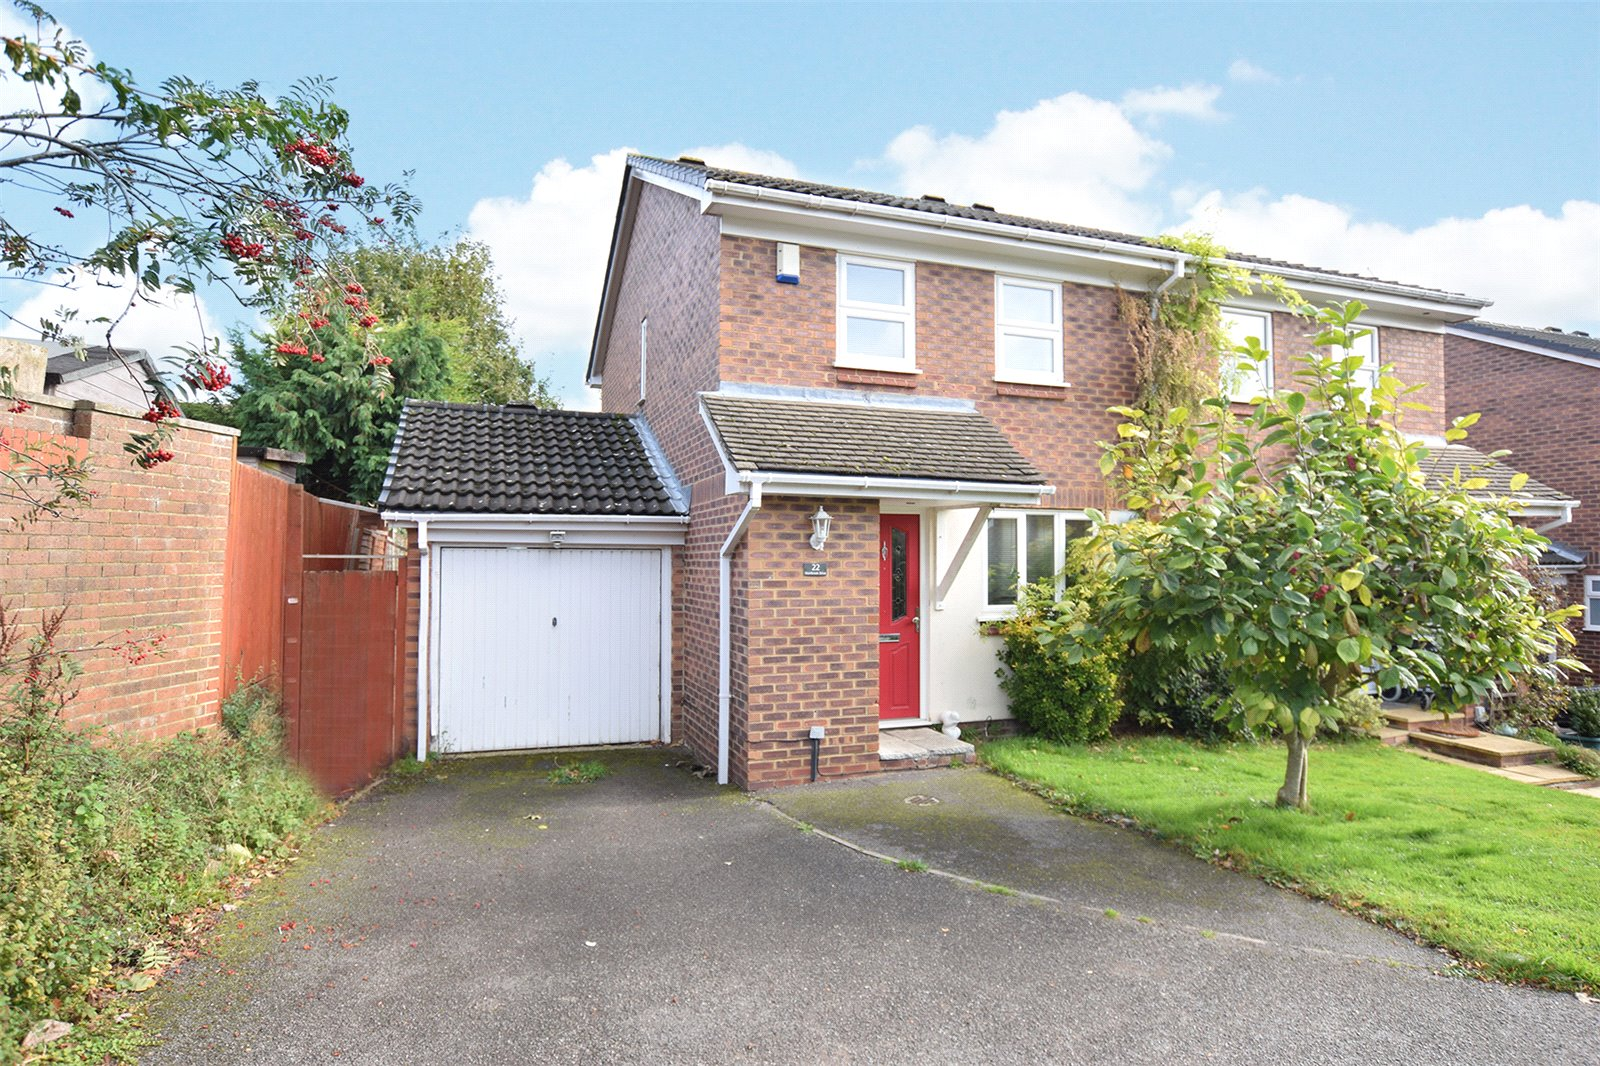 3 Bedrooms Semi Detached House for sale in Hombrook Drive, Bracknell, Berkshire, RG42